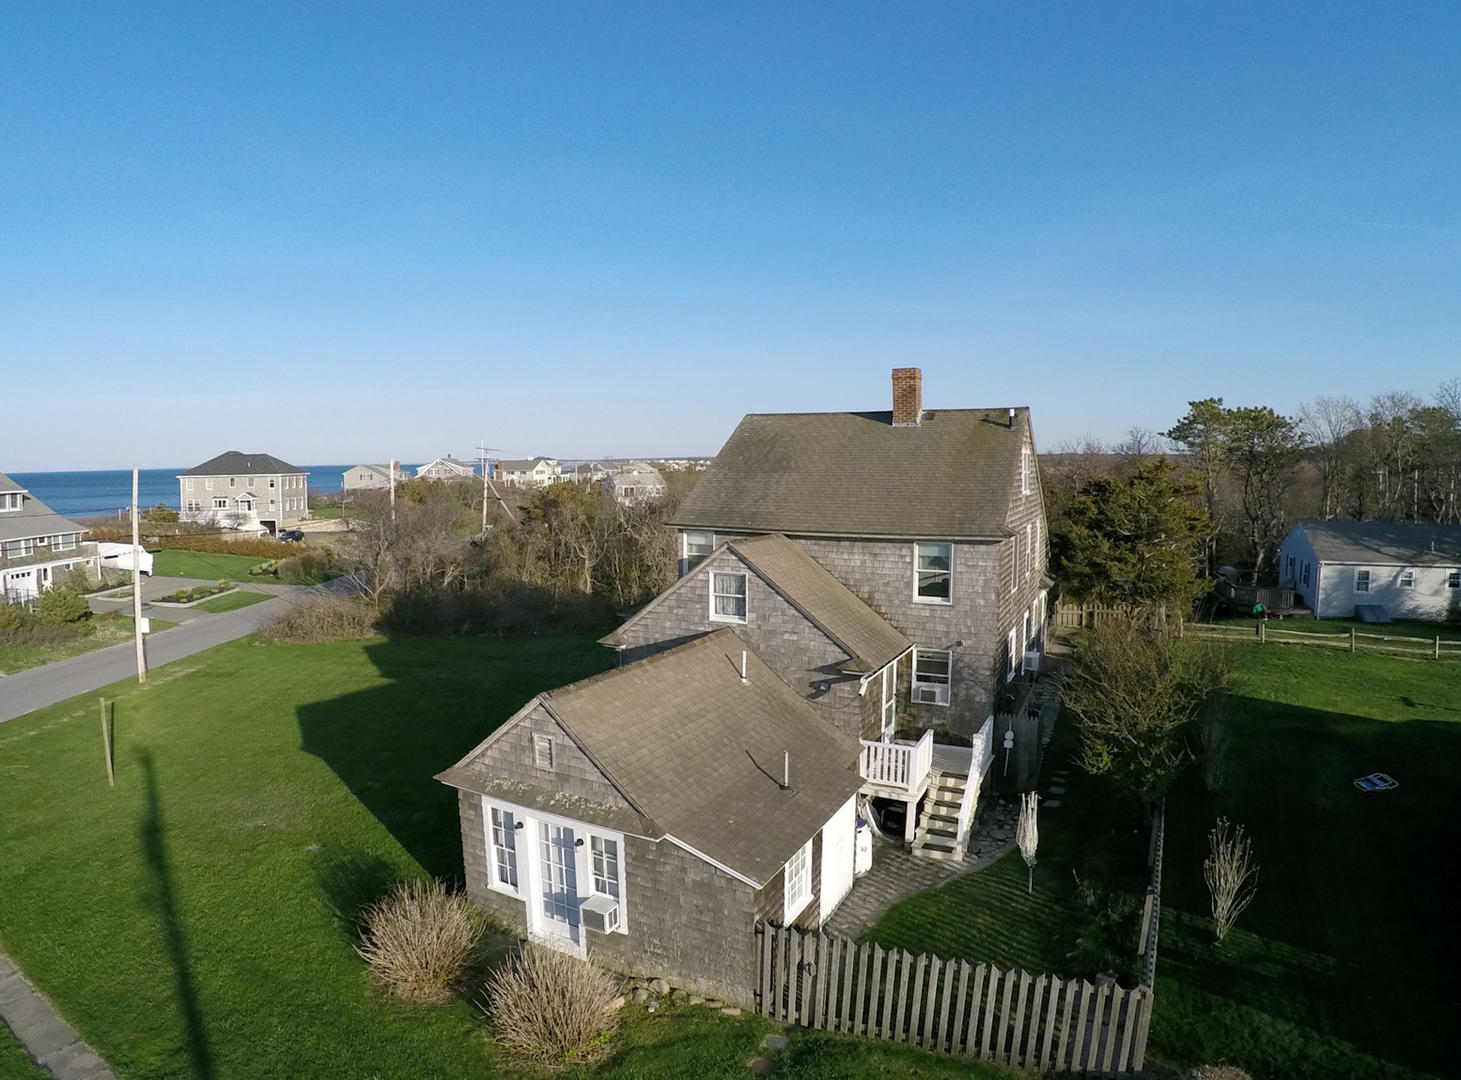 Aerial of house and ocean across street